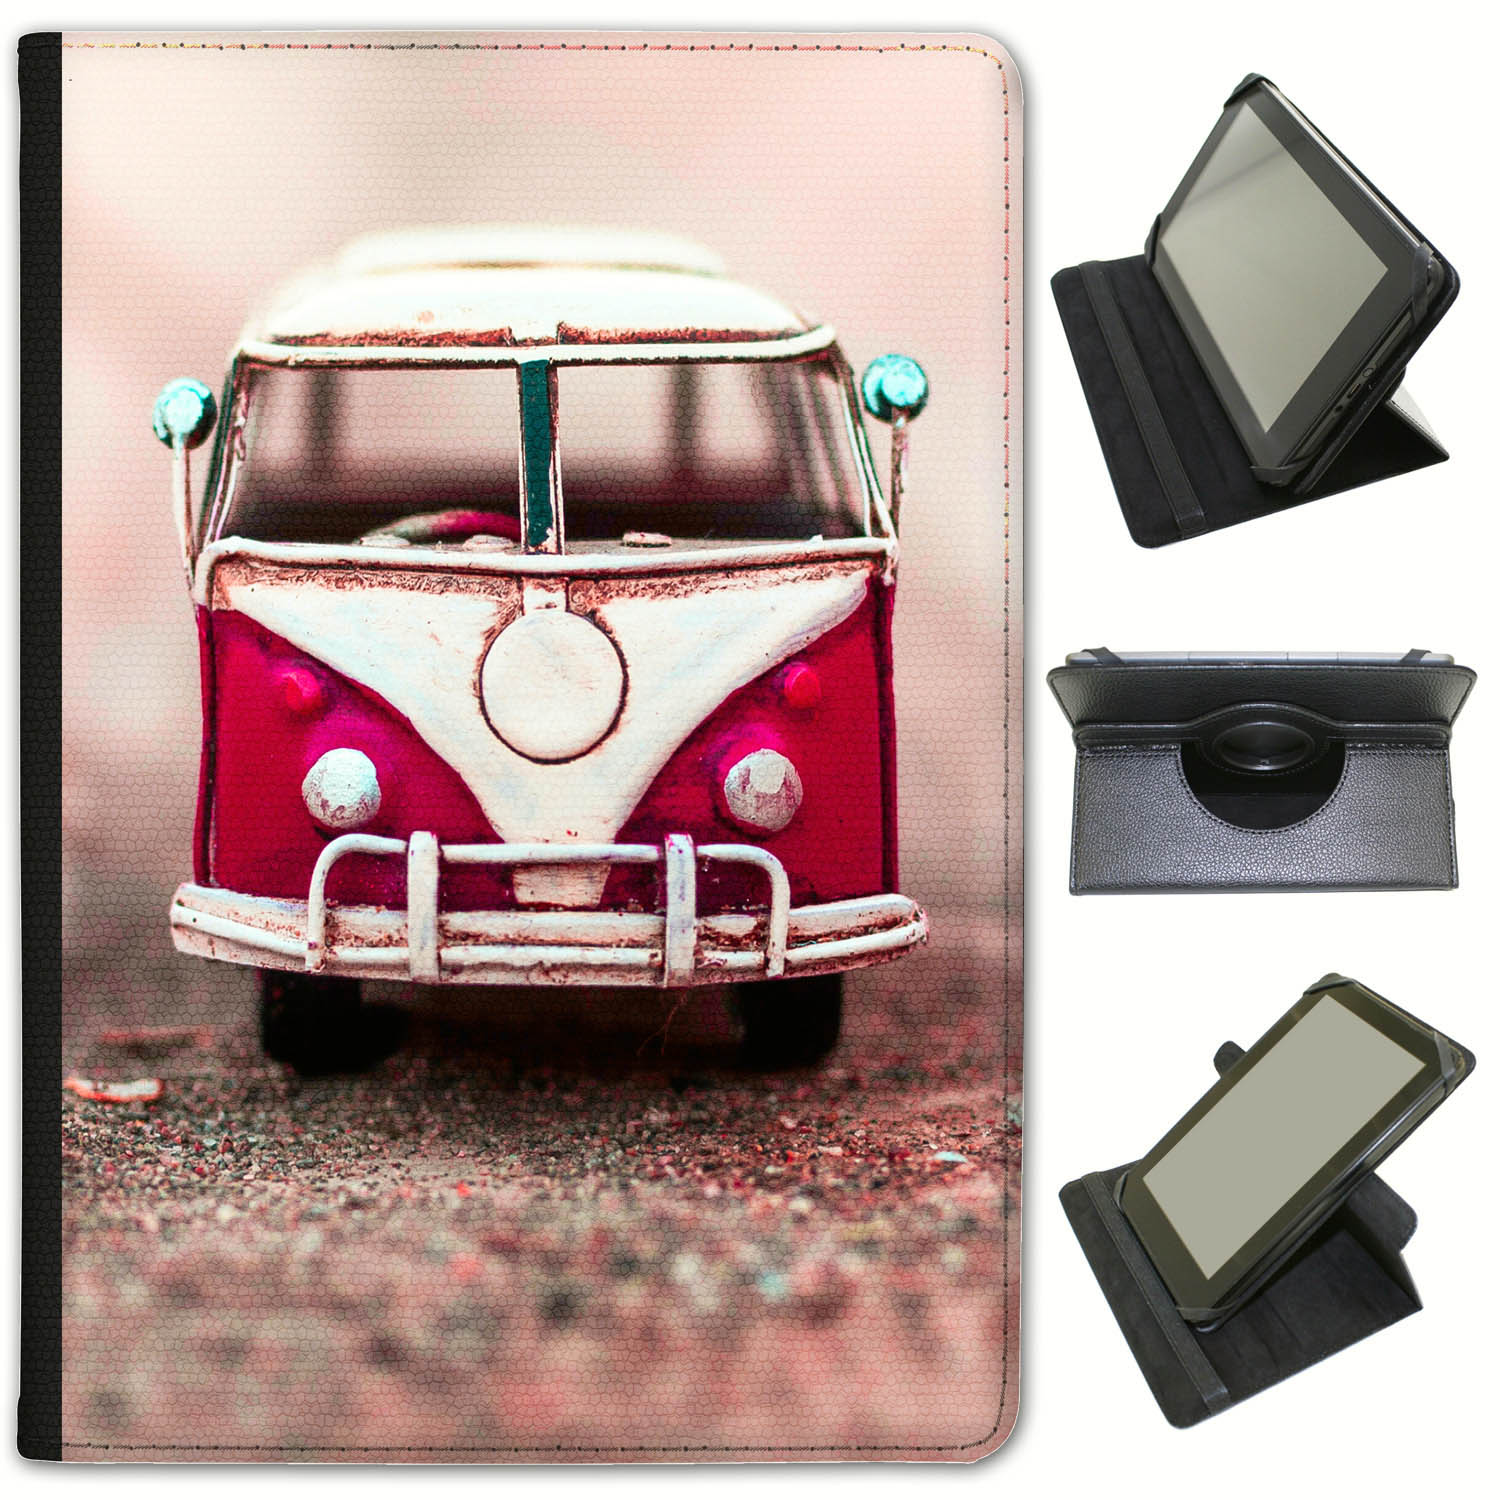 Old-Camper-Van-Universal-Folio-Leather-Case-For-Archos-Tablets